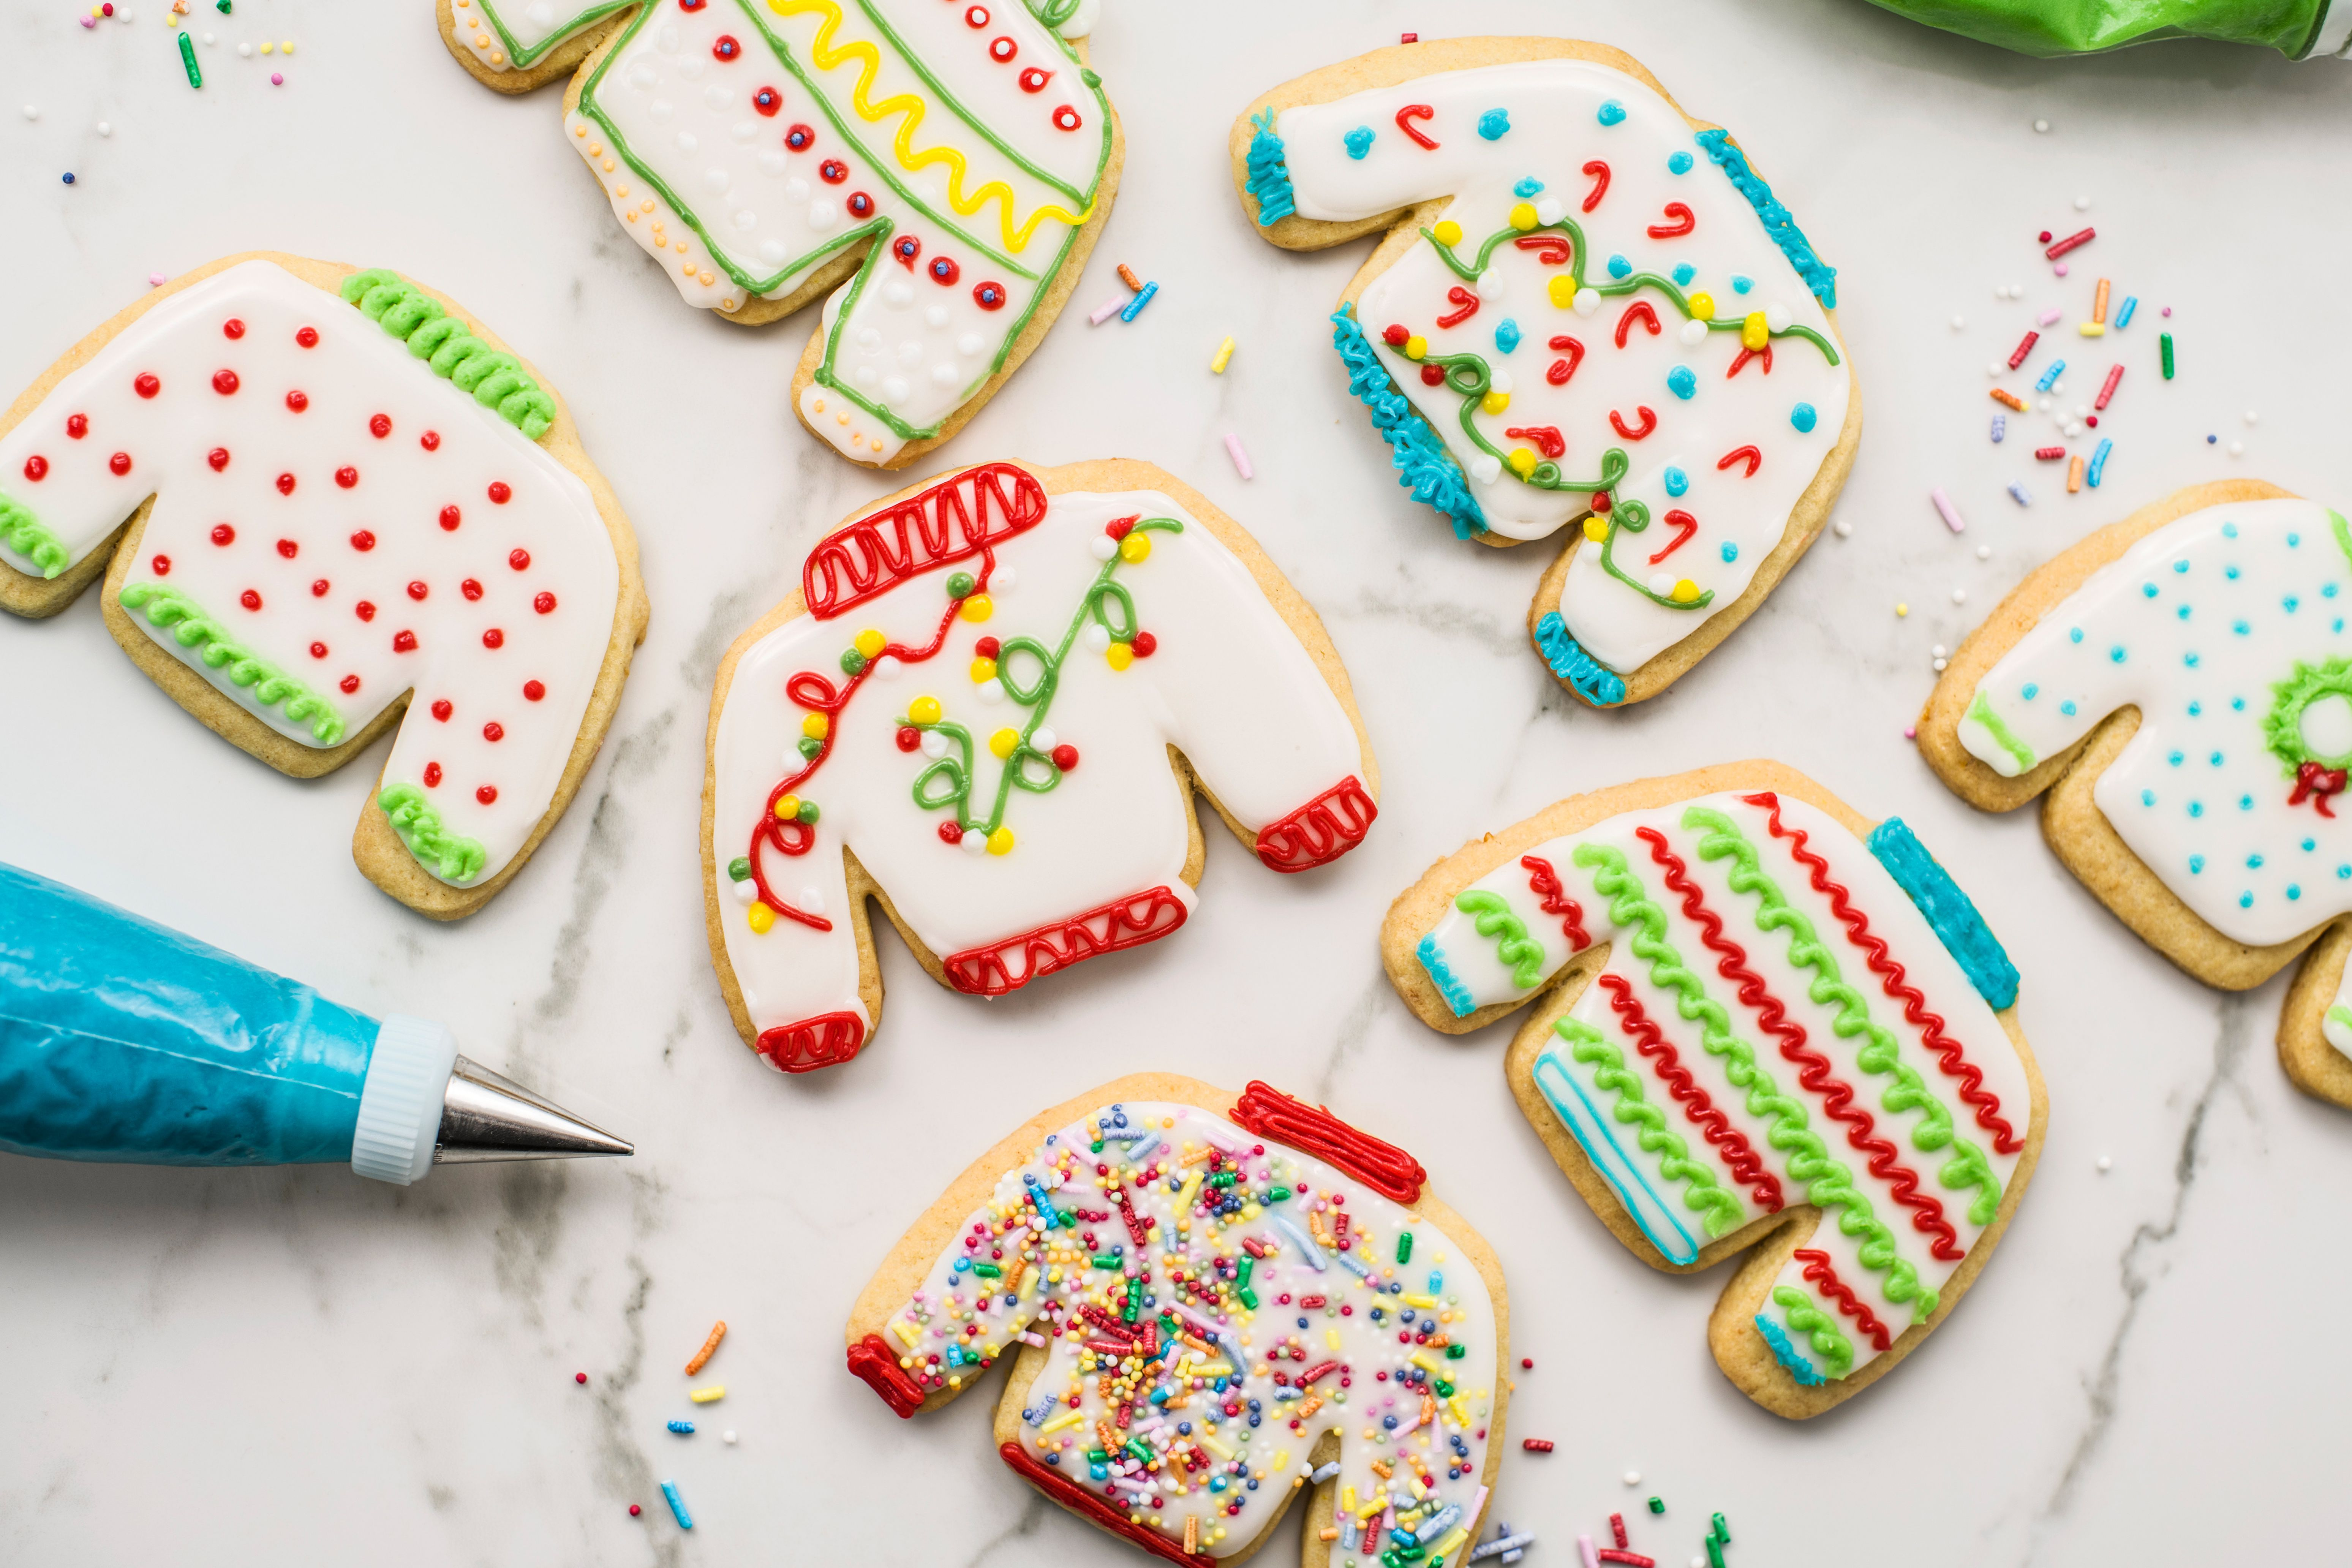 Decorating ugly sweater cookies with frosting